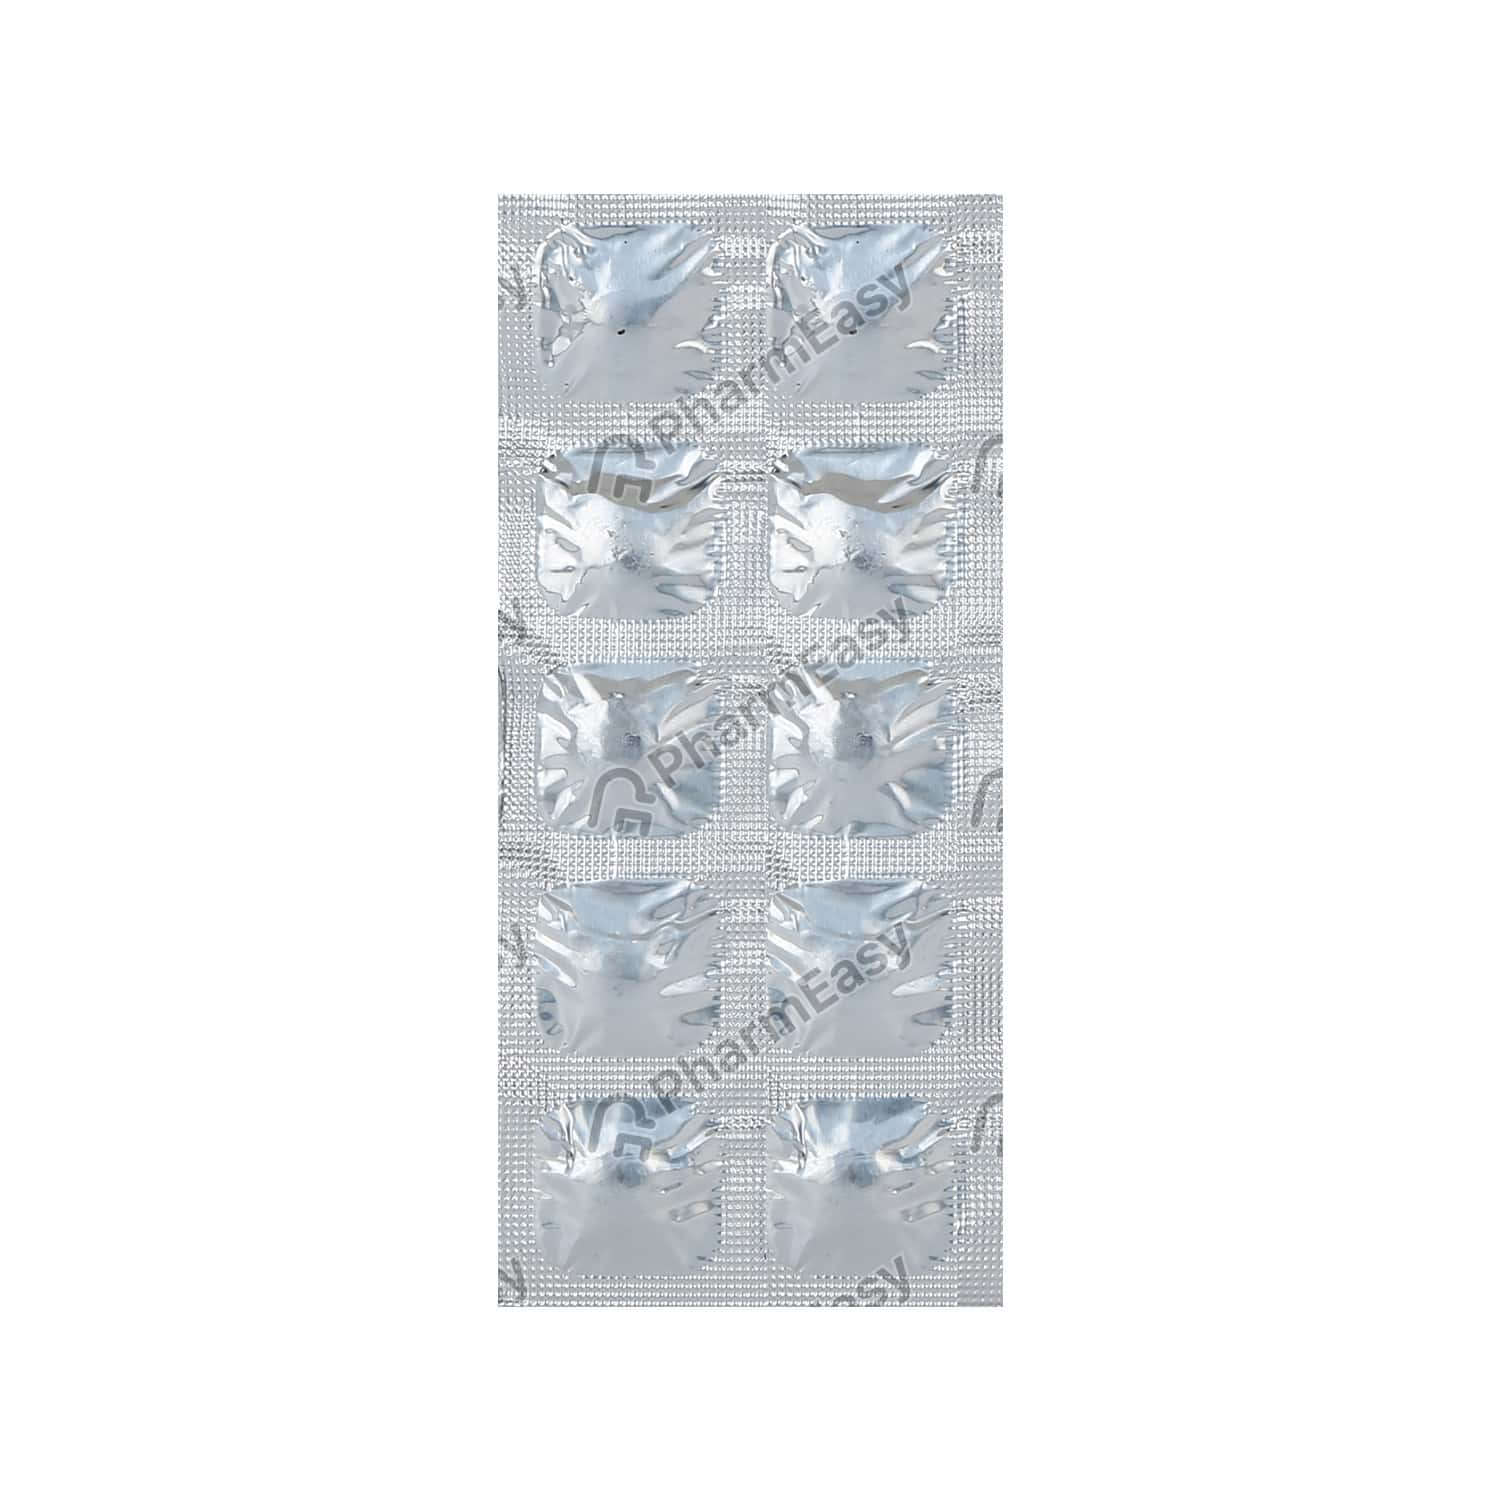 Liofen 10mg Strip Of 10 Tablets